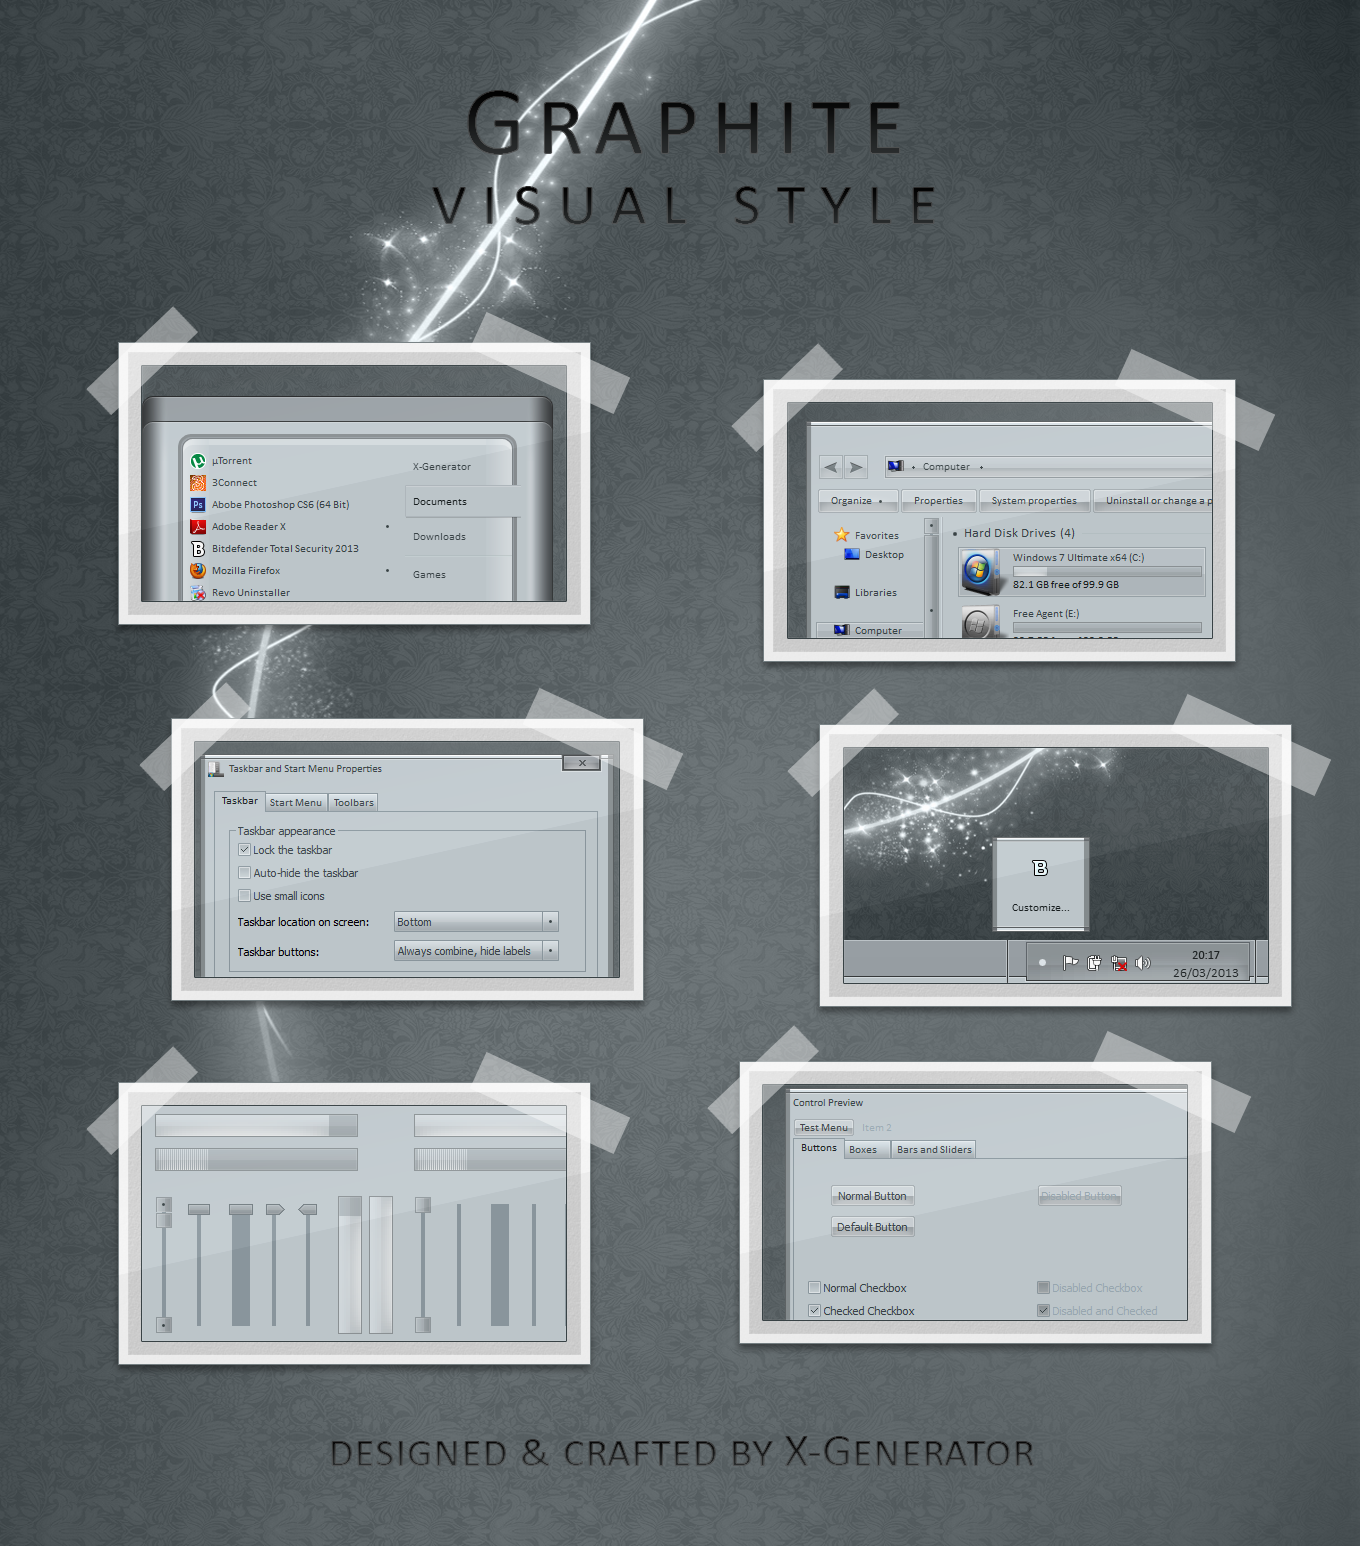 [����] Graphite Visual Style [ Windows 7 / 2013 ]